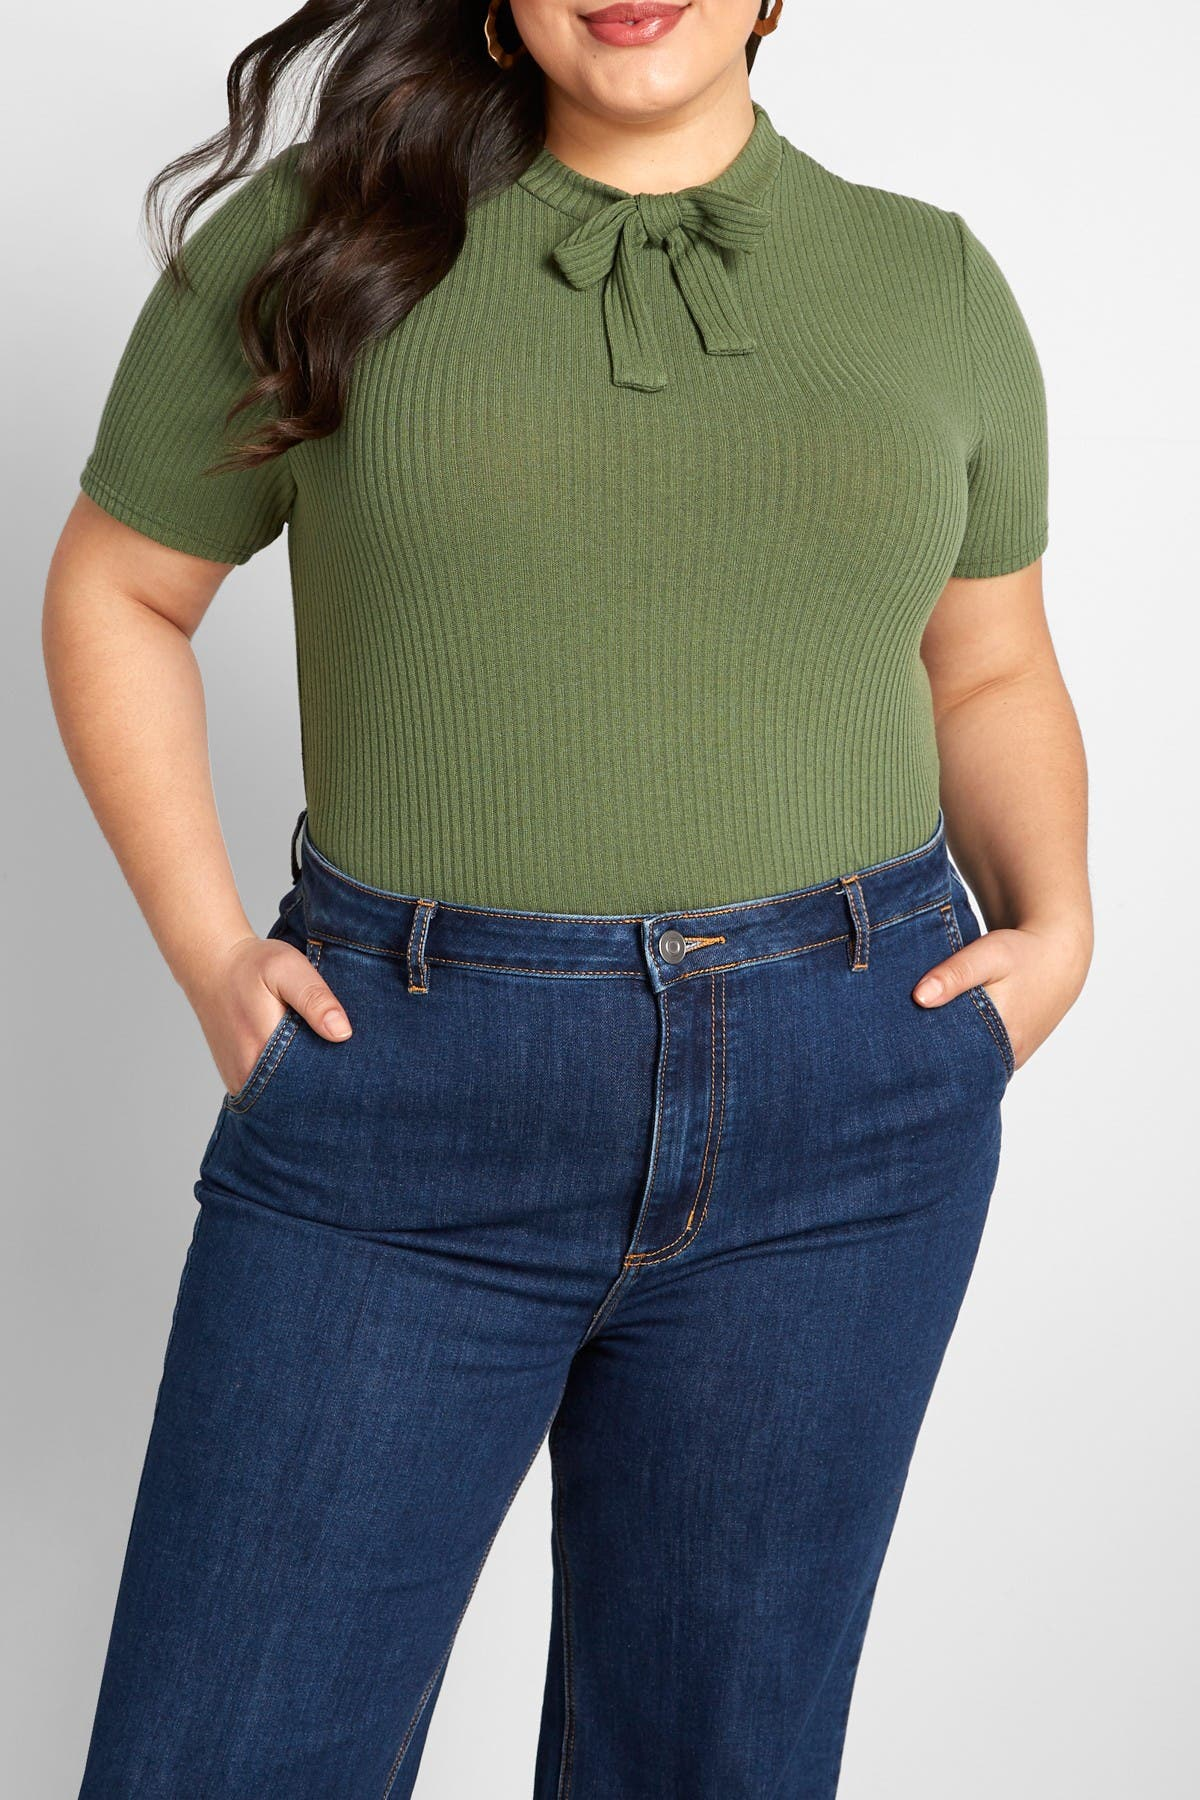 Image of MODCLOTH Palpable Perks Tie Neck Top